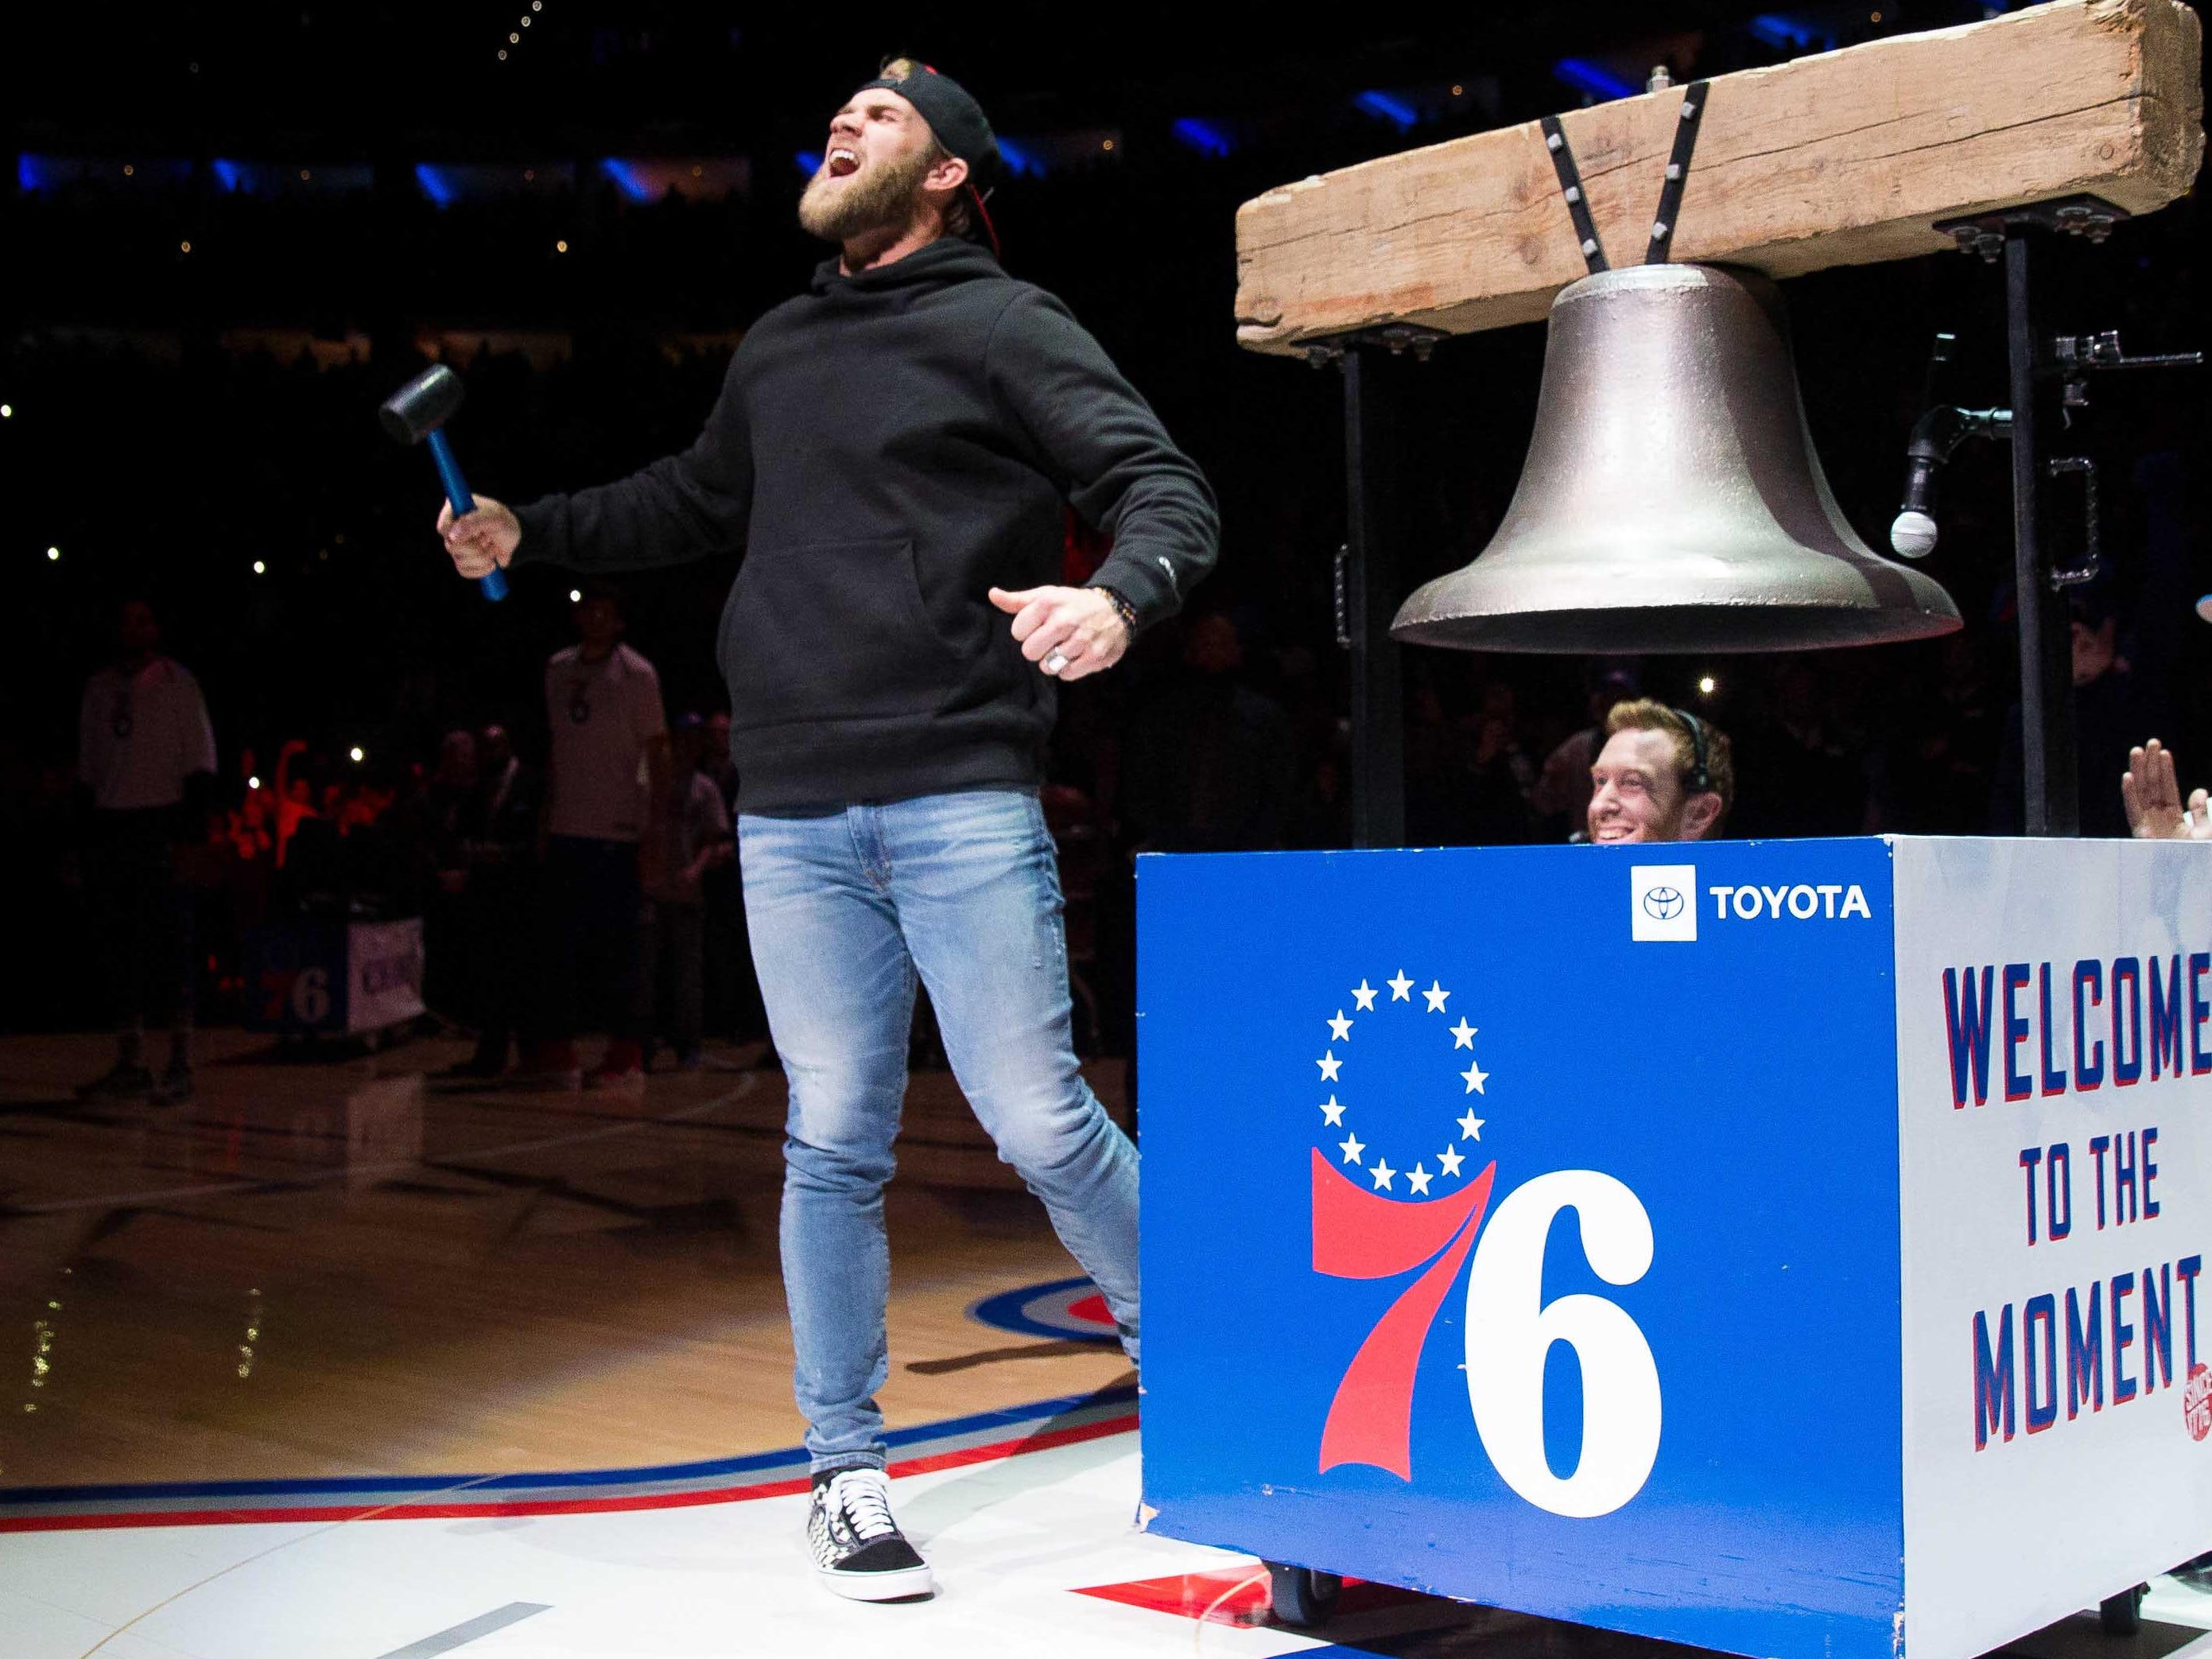 April 4: Phillies outfielder Bryce Harper rings the ceremonial bell and fires up the crowd before the 76ers take on the Bucks in Philadelphia.